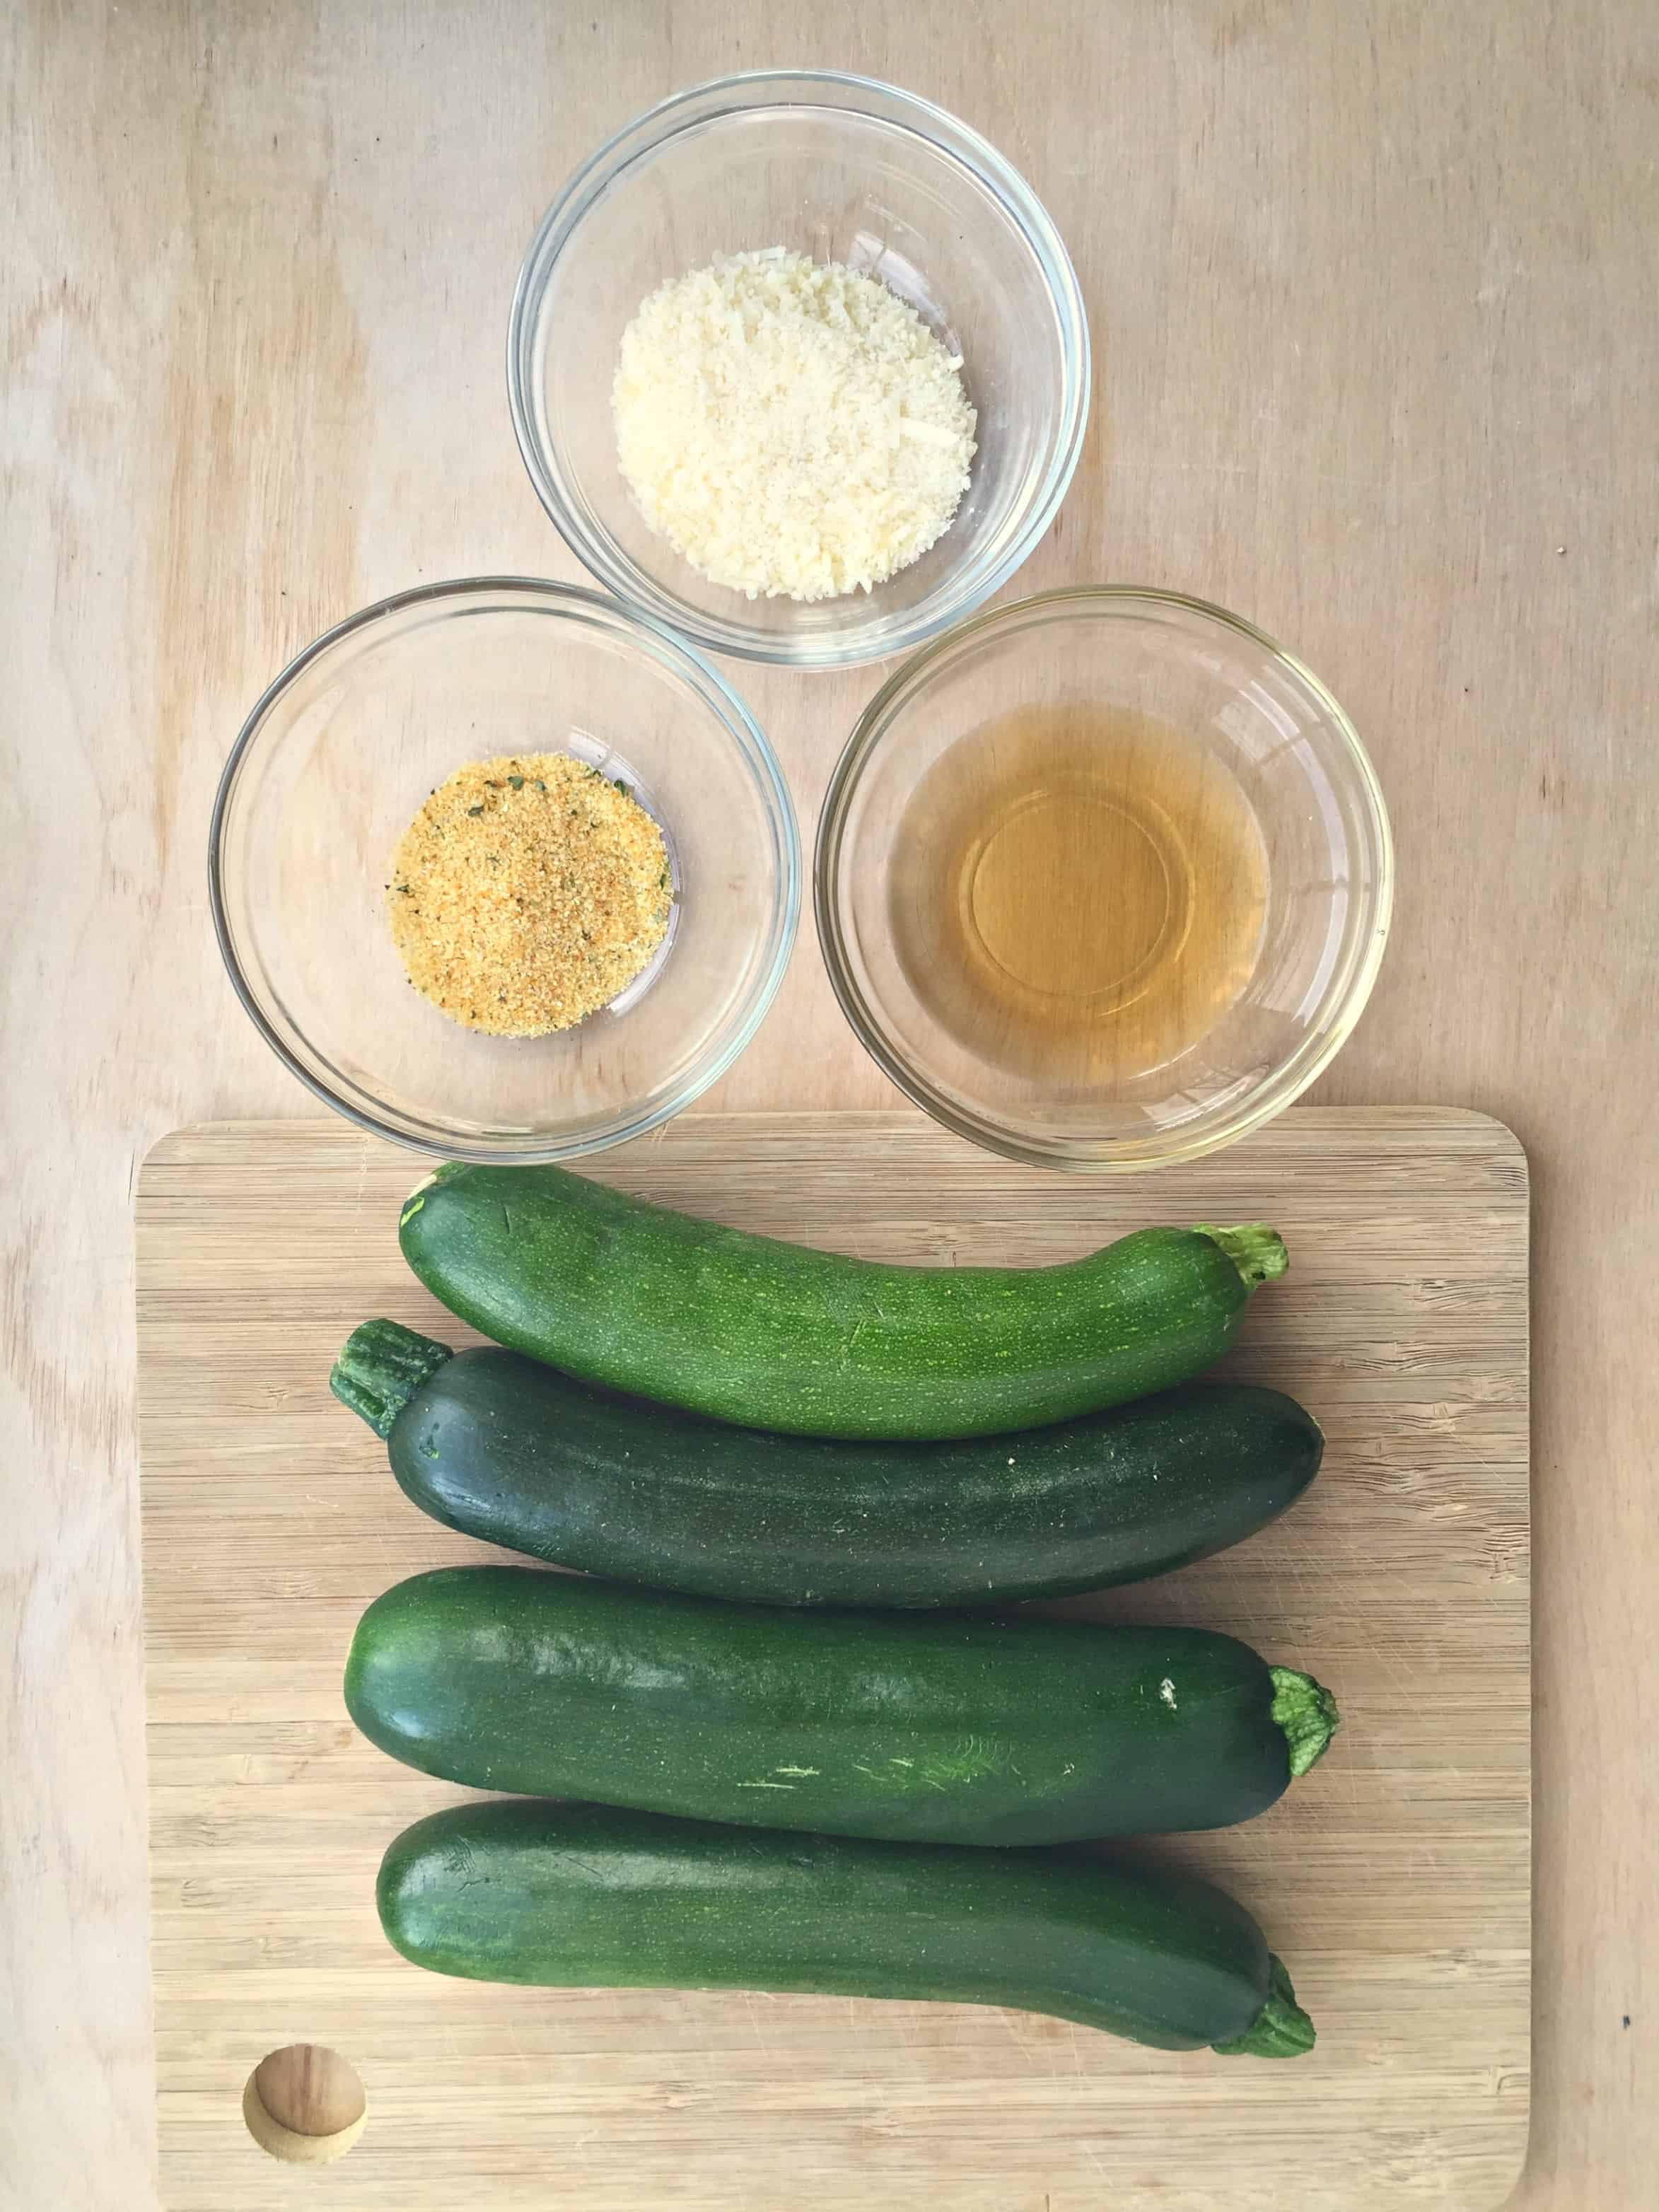 baked zucchini chips ingredients laid out